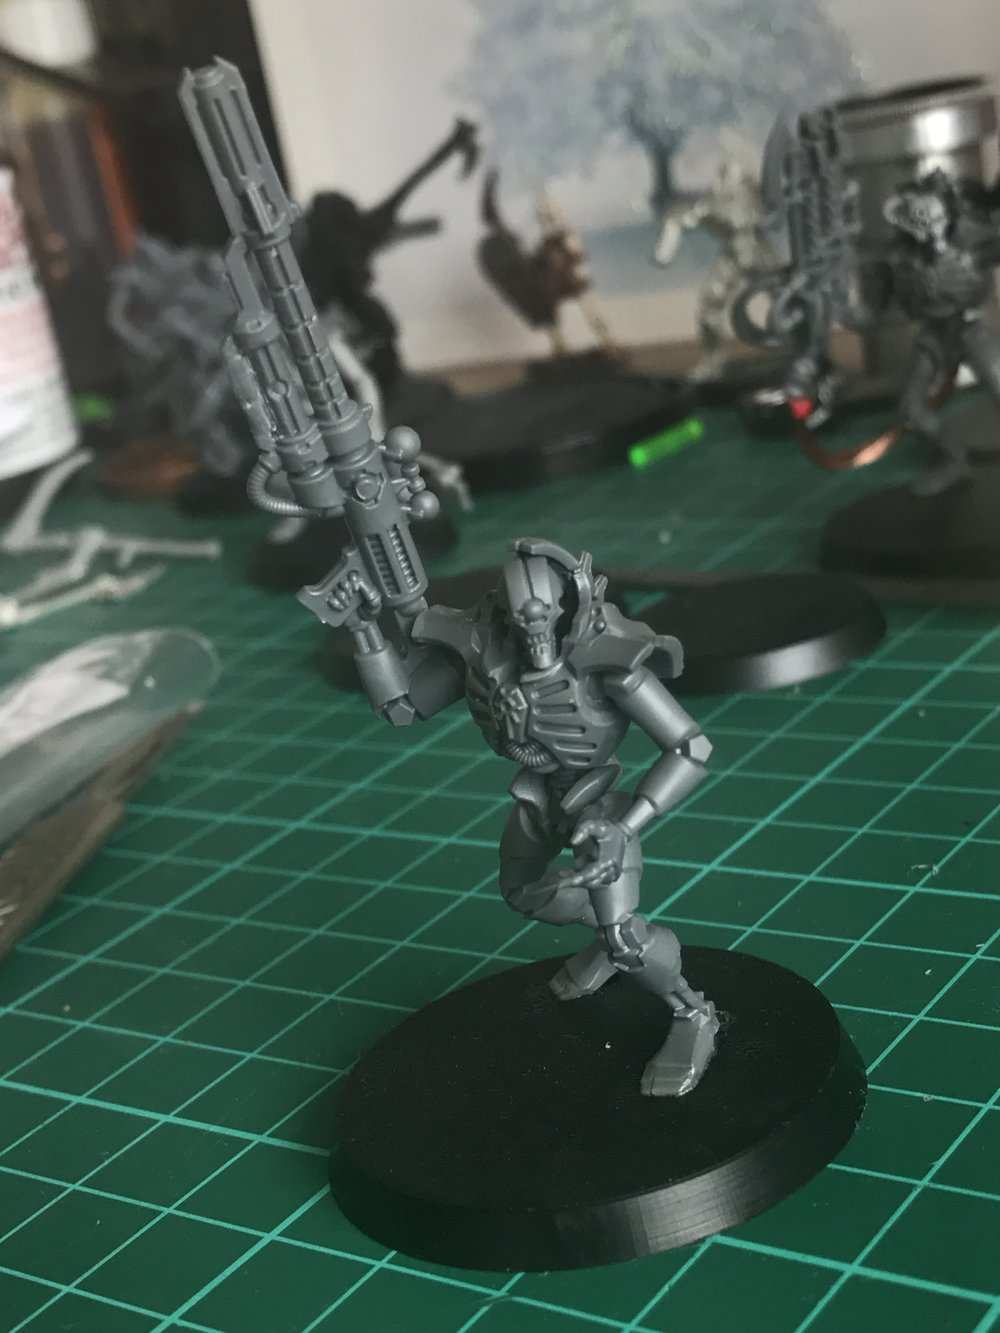 My Deathmark 'Vindicare' Assassin